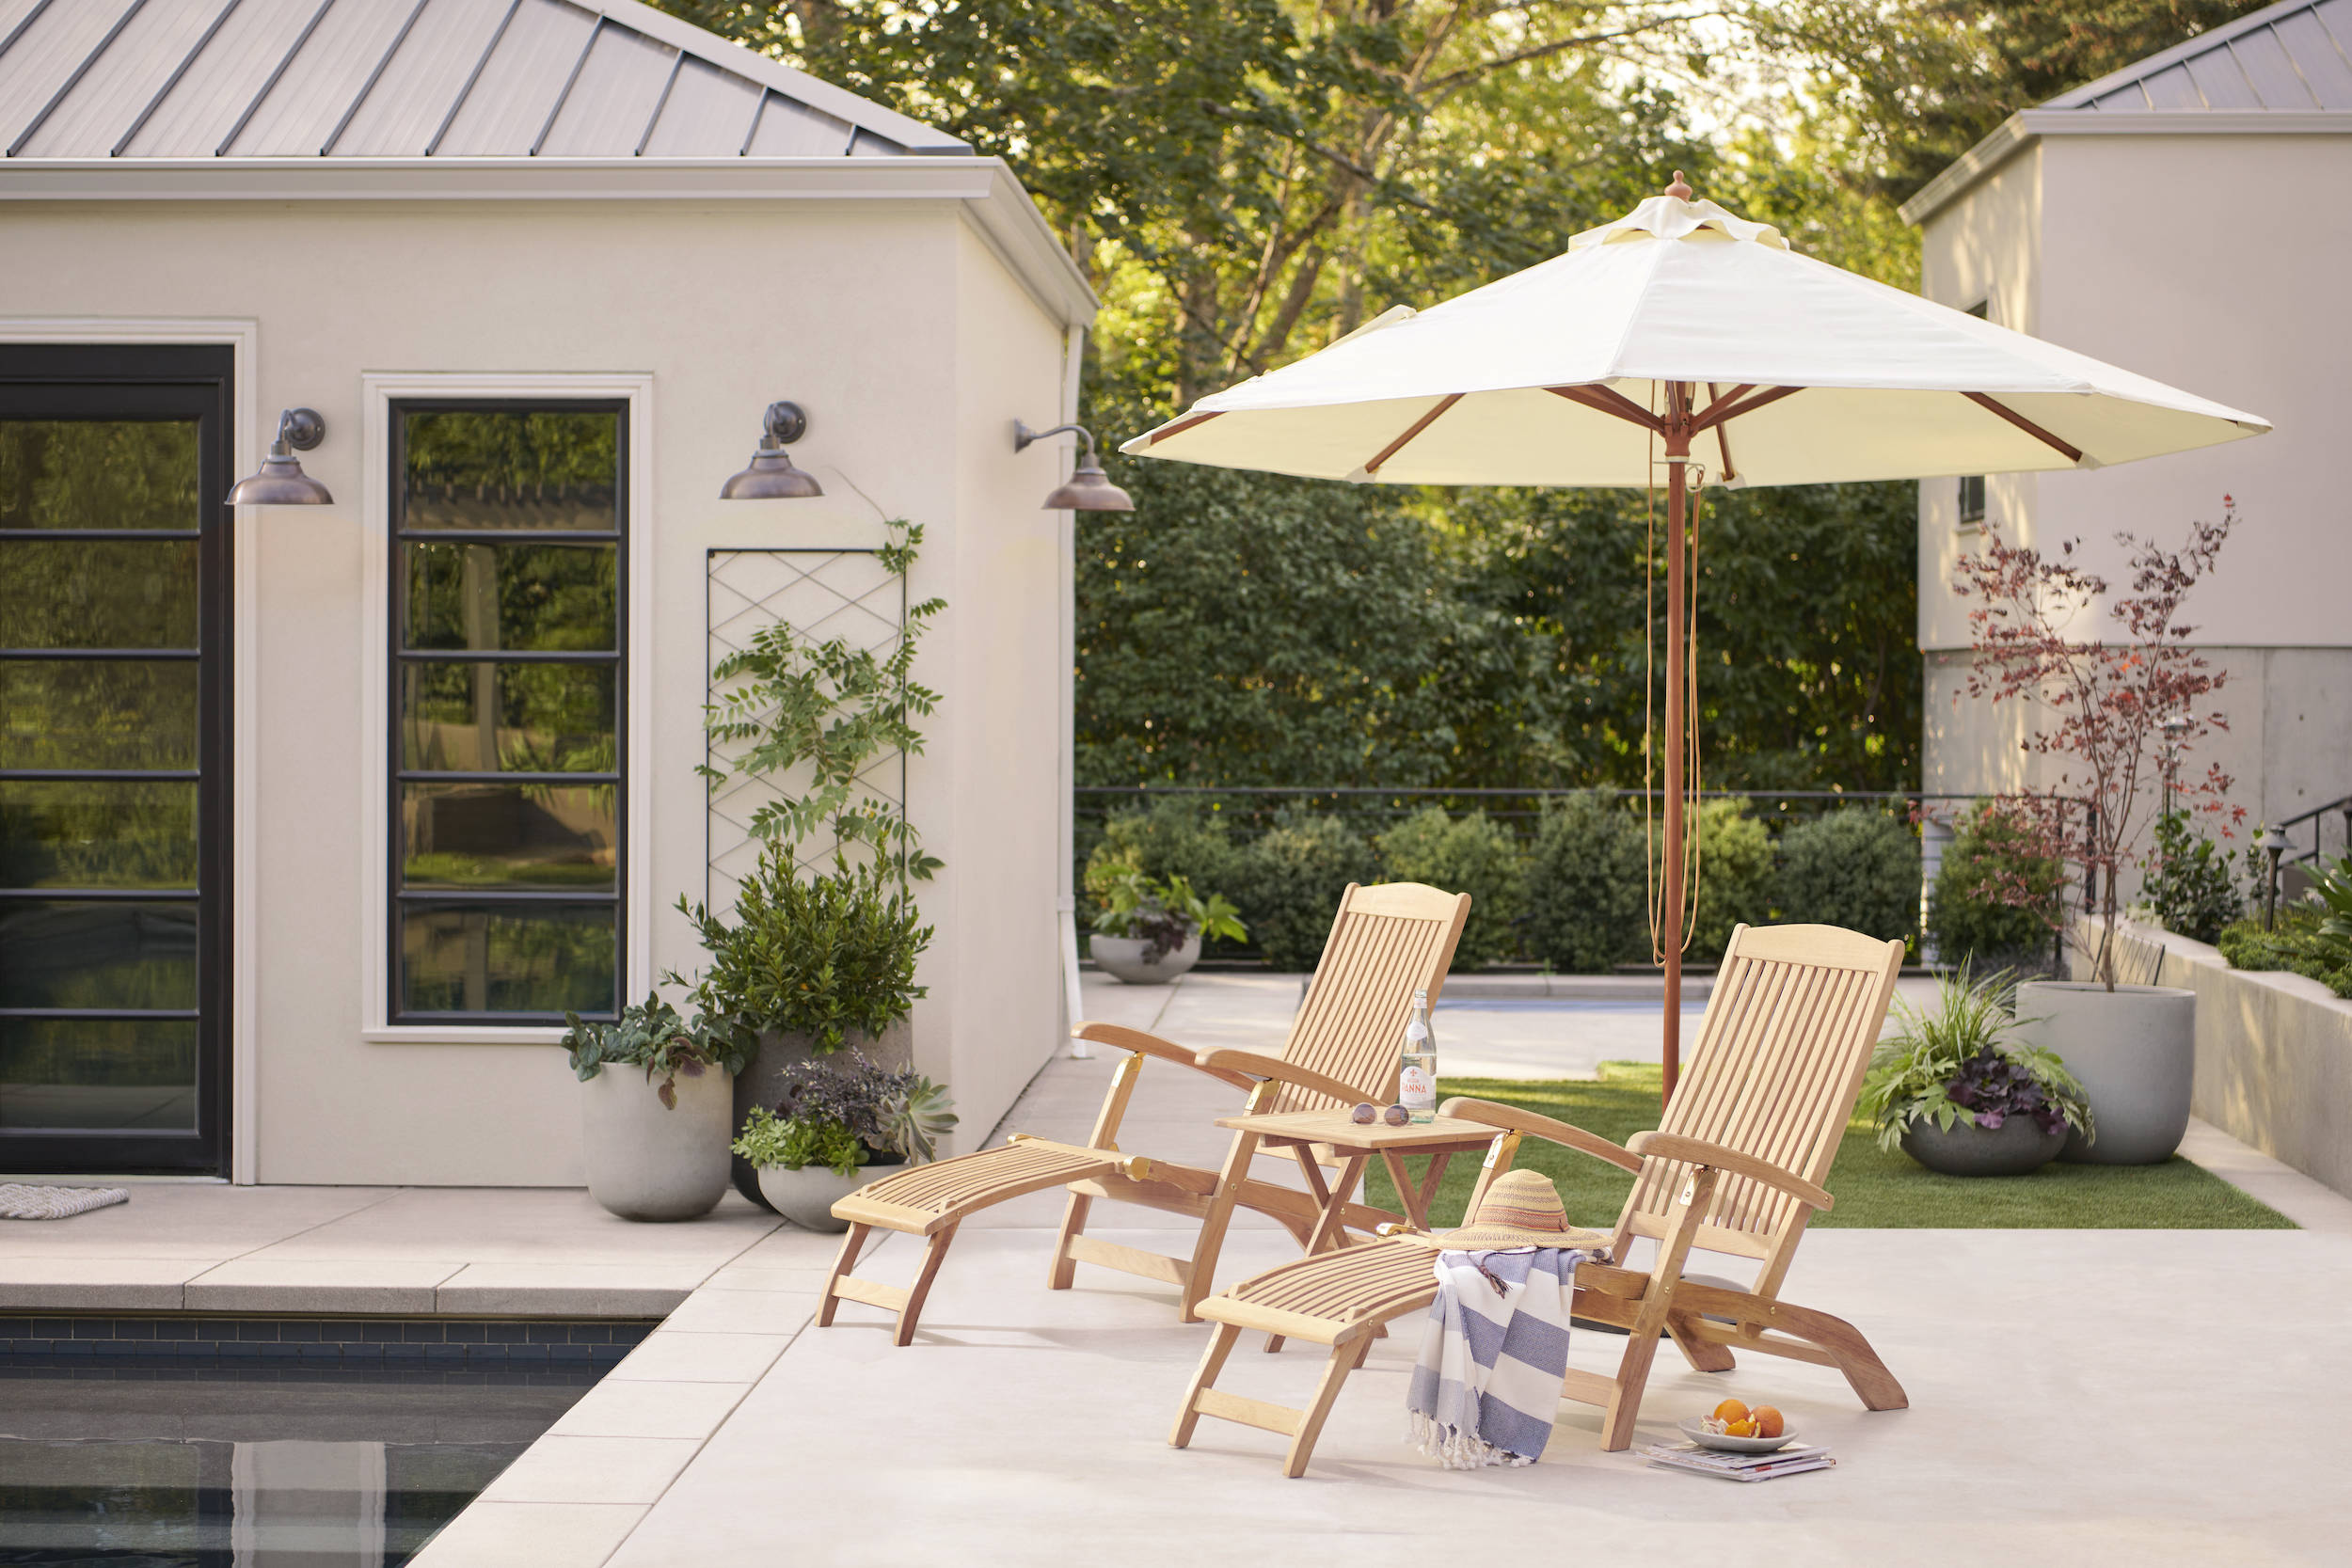 Outdoor Project: Five Tips for Creating an Ideal At-Home Retreat, from Rejuvenation